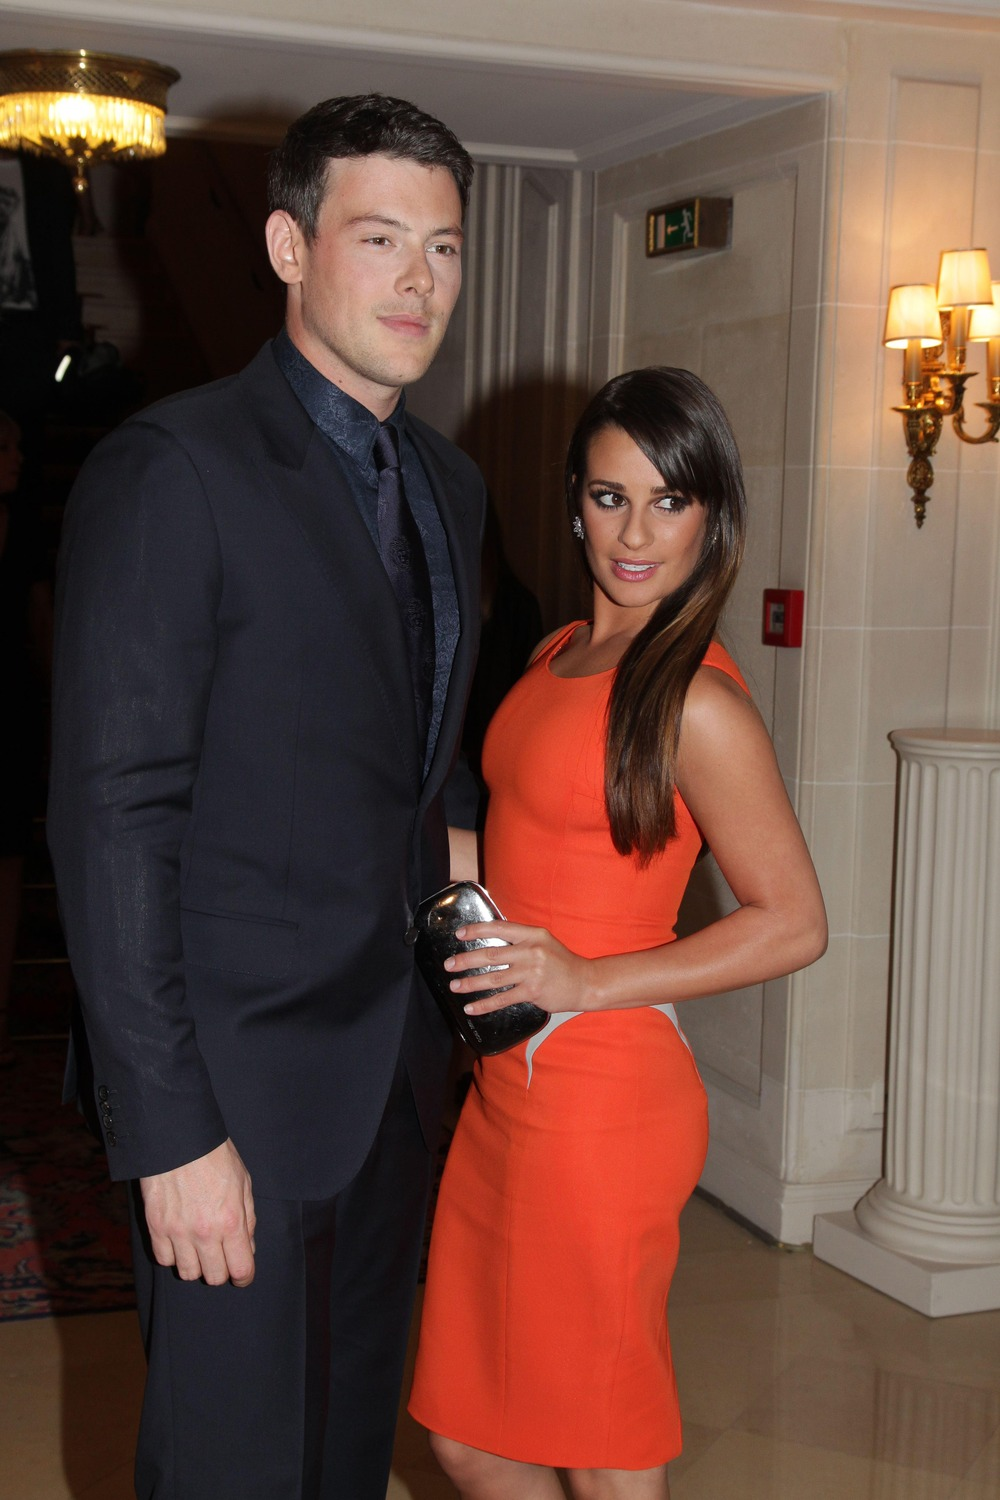 How Much Taller Than Lea Michele is Boyfriend Cory Monteith?